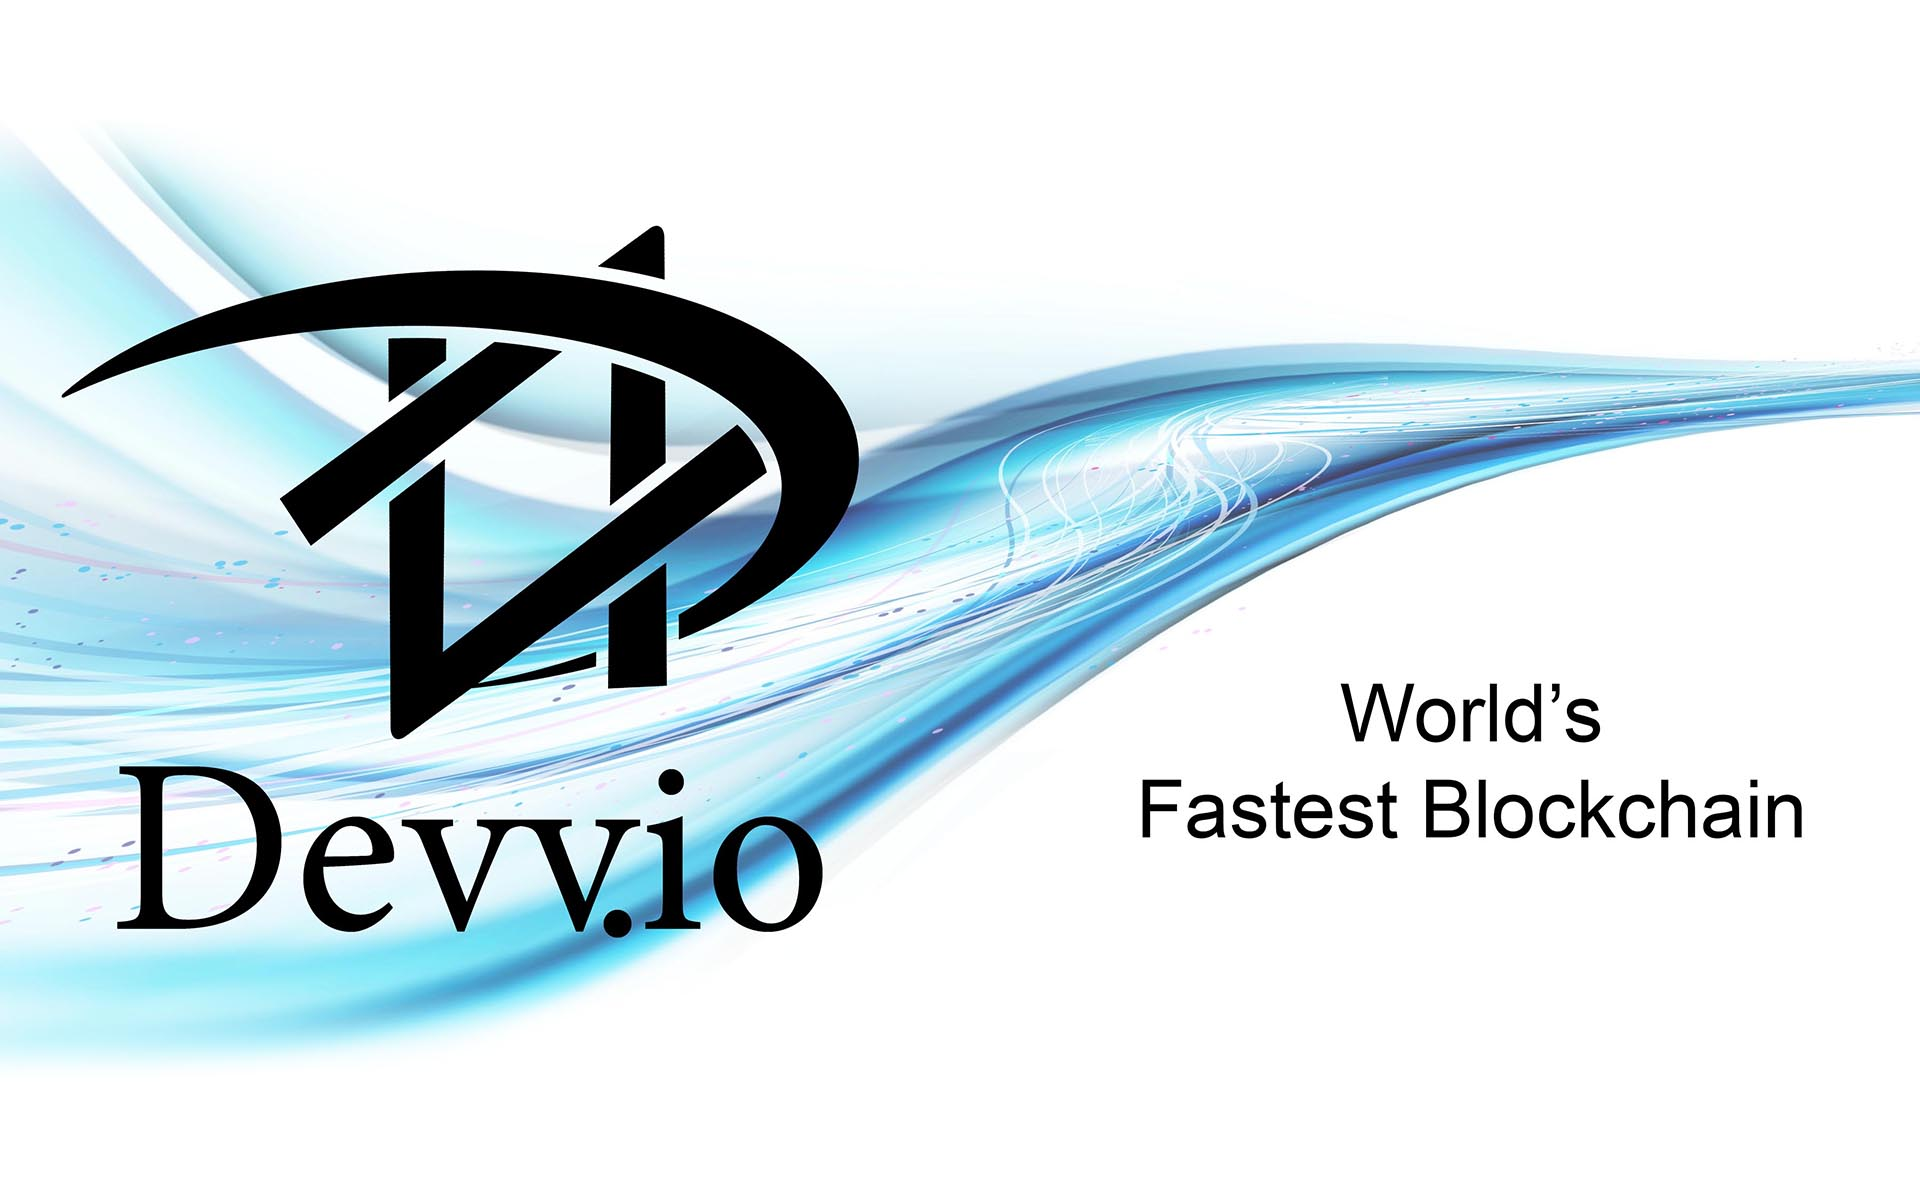 Devvio Blockchain First to Surpass Millions of Transactions per Second